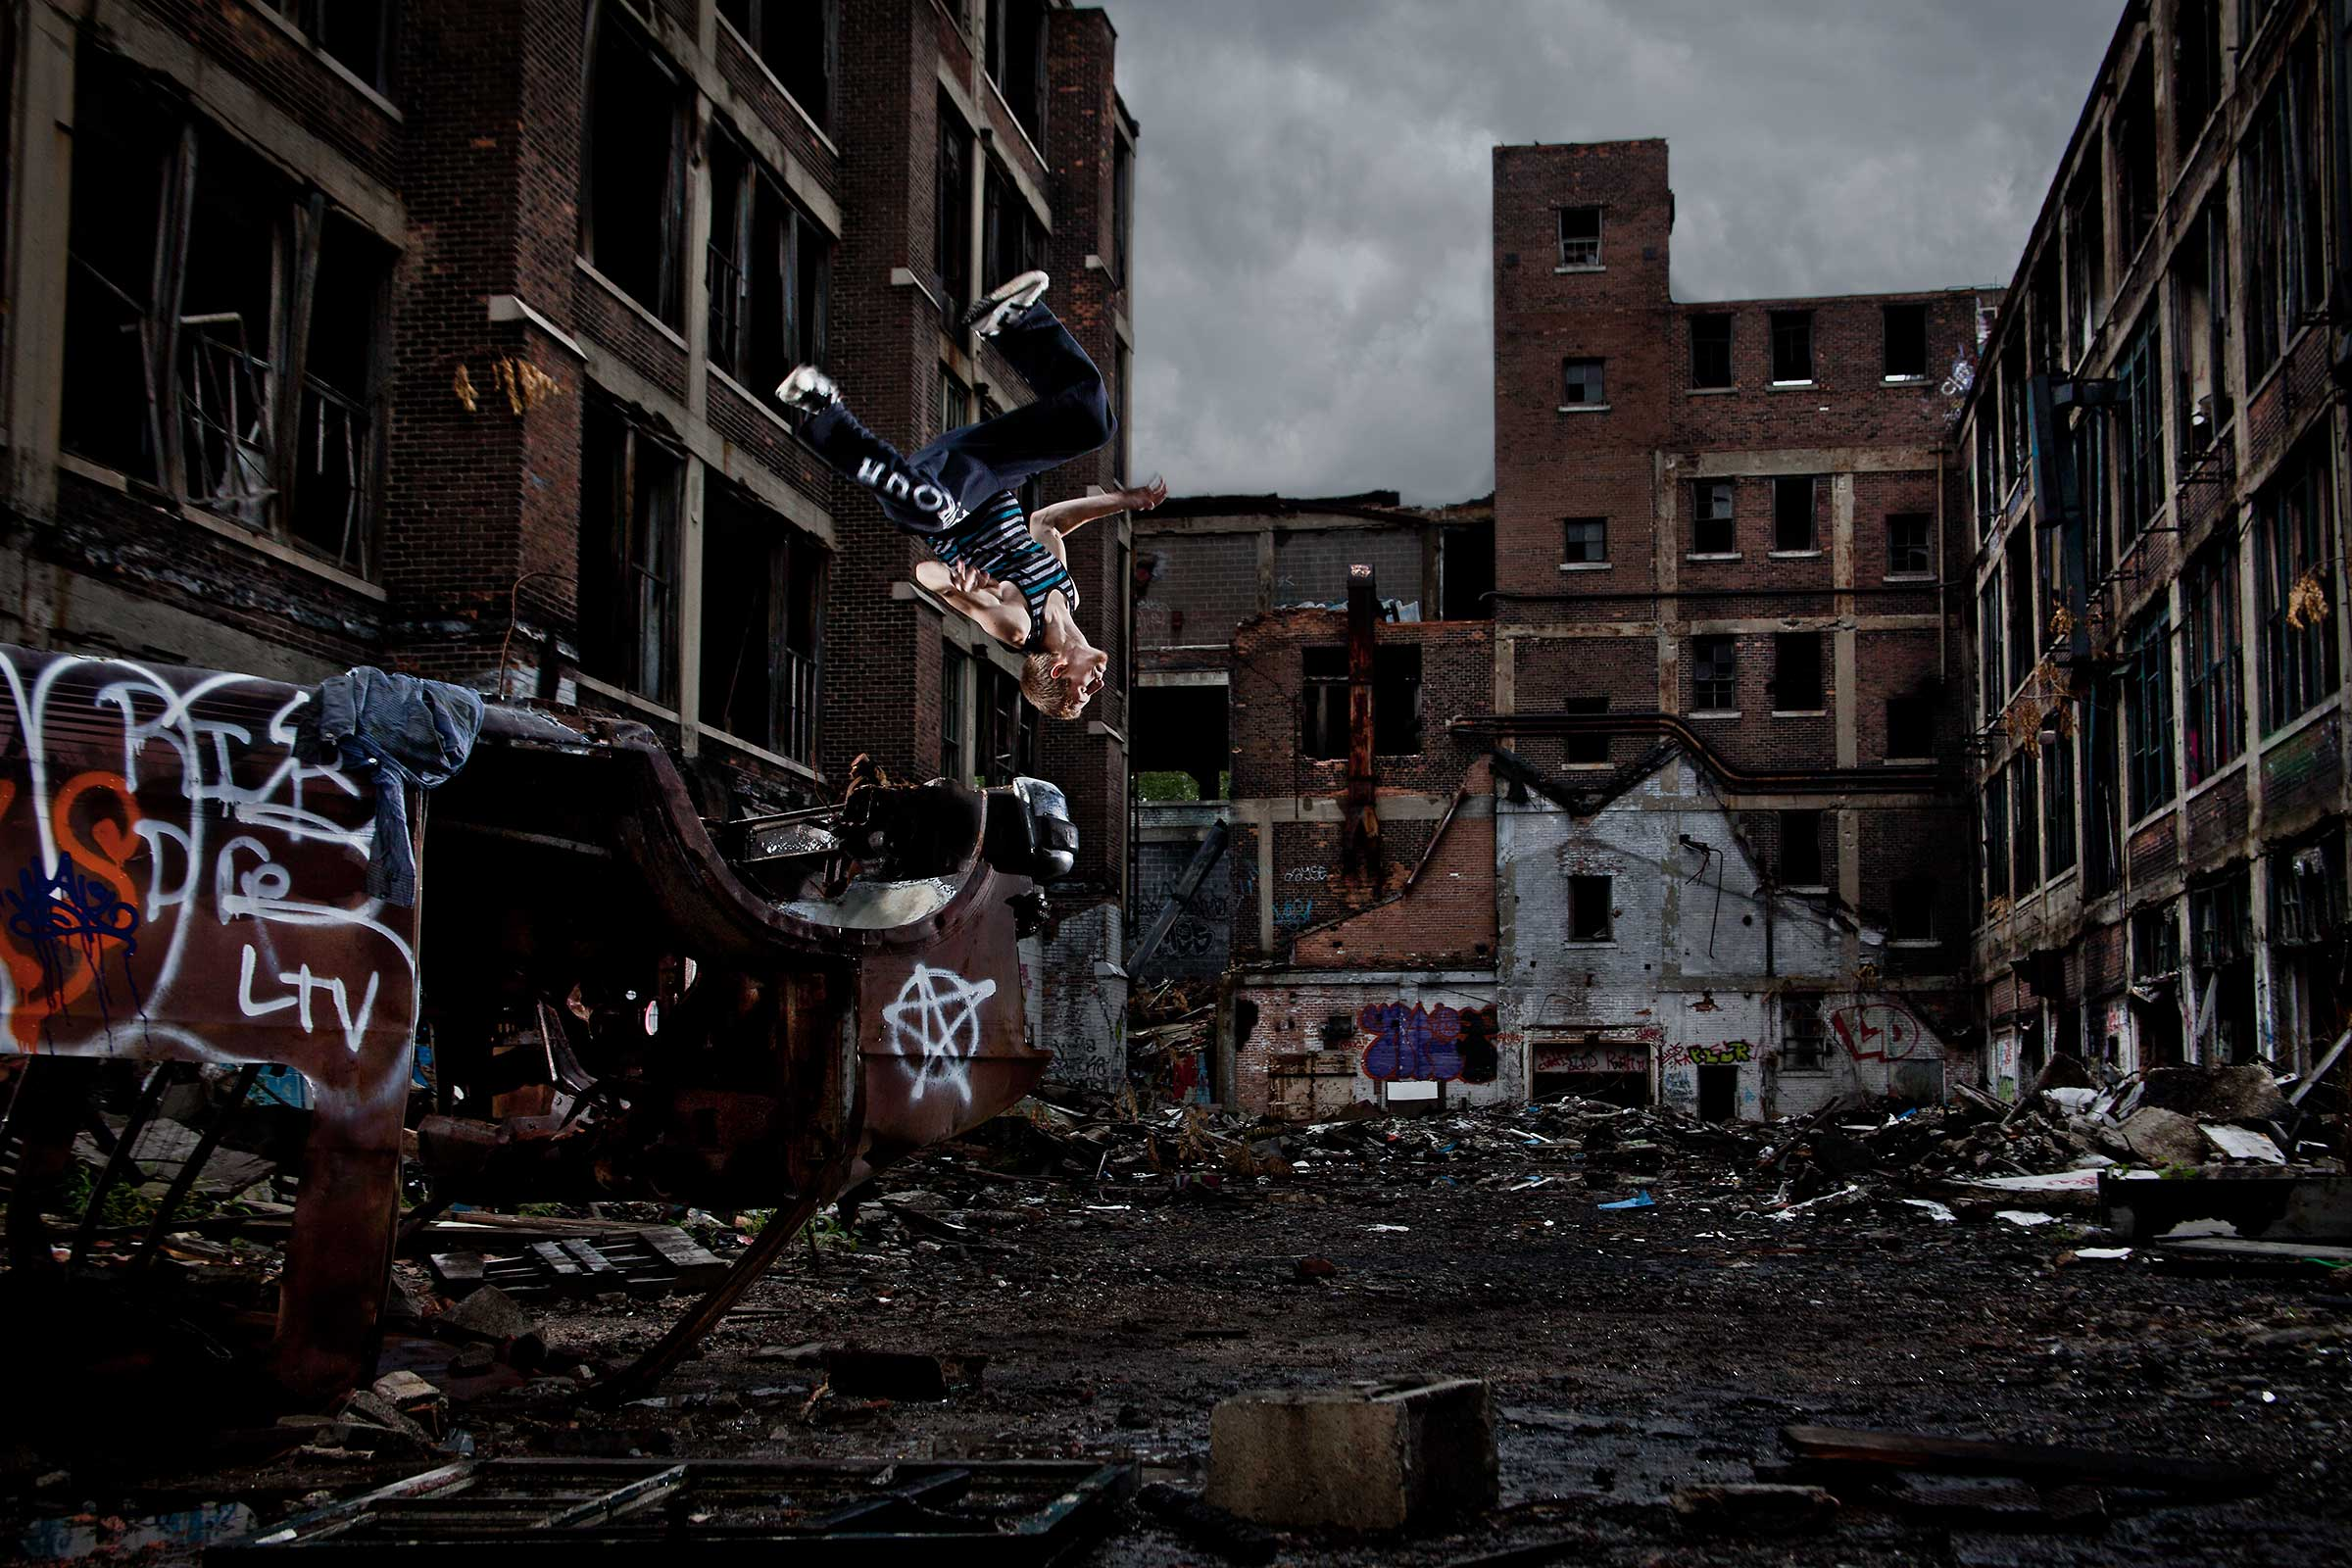 a young male parkour athelete does a flip off an abandoned car in an industrial location